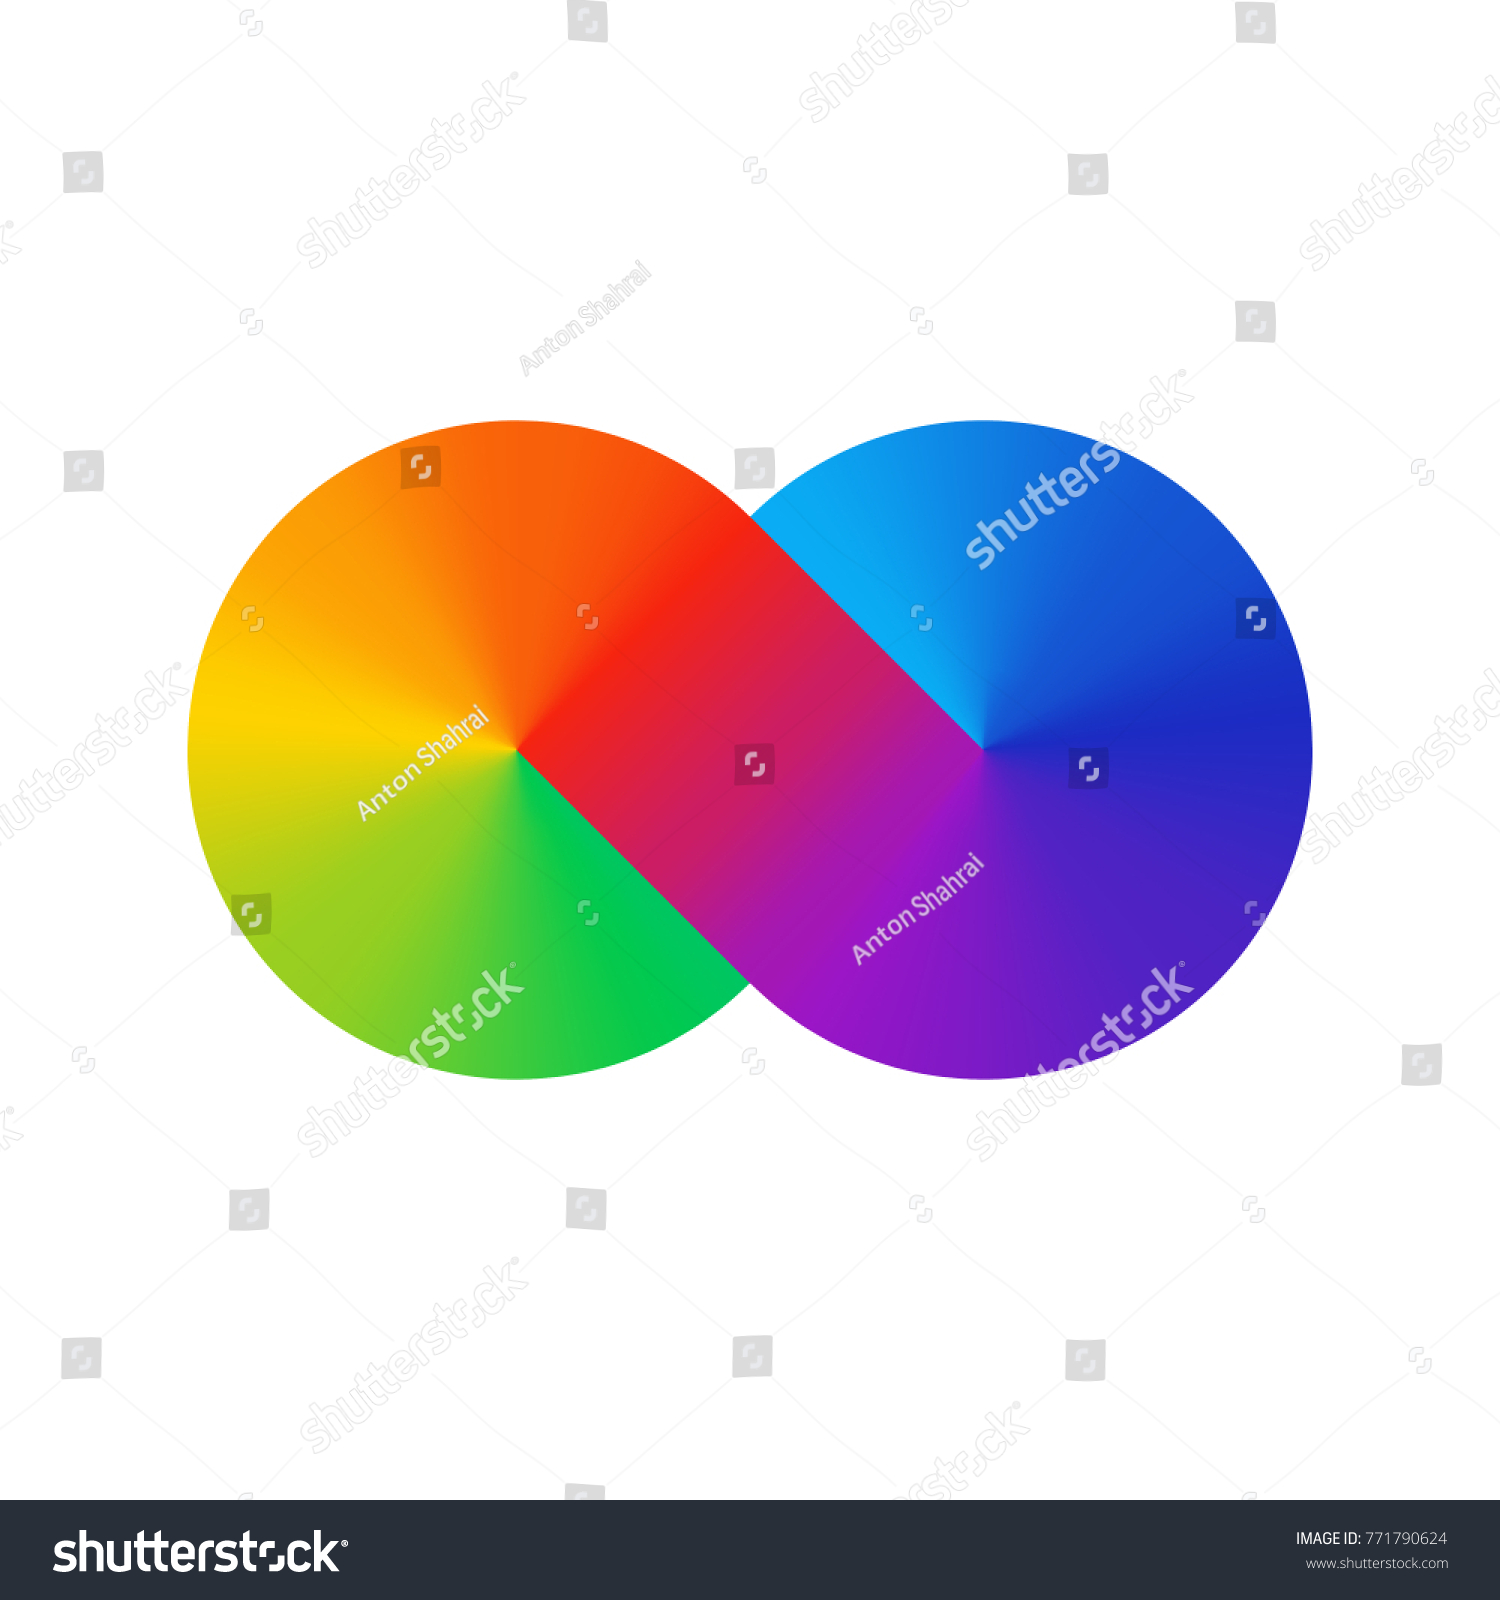 Thick line infinity sign color spectrum stock vector 771790624 thick line infinity sign color spectrum rainbow gradient in the shape of the infinity symbol buycottarizona Choice Image